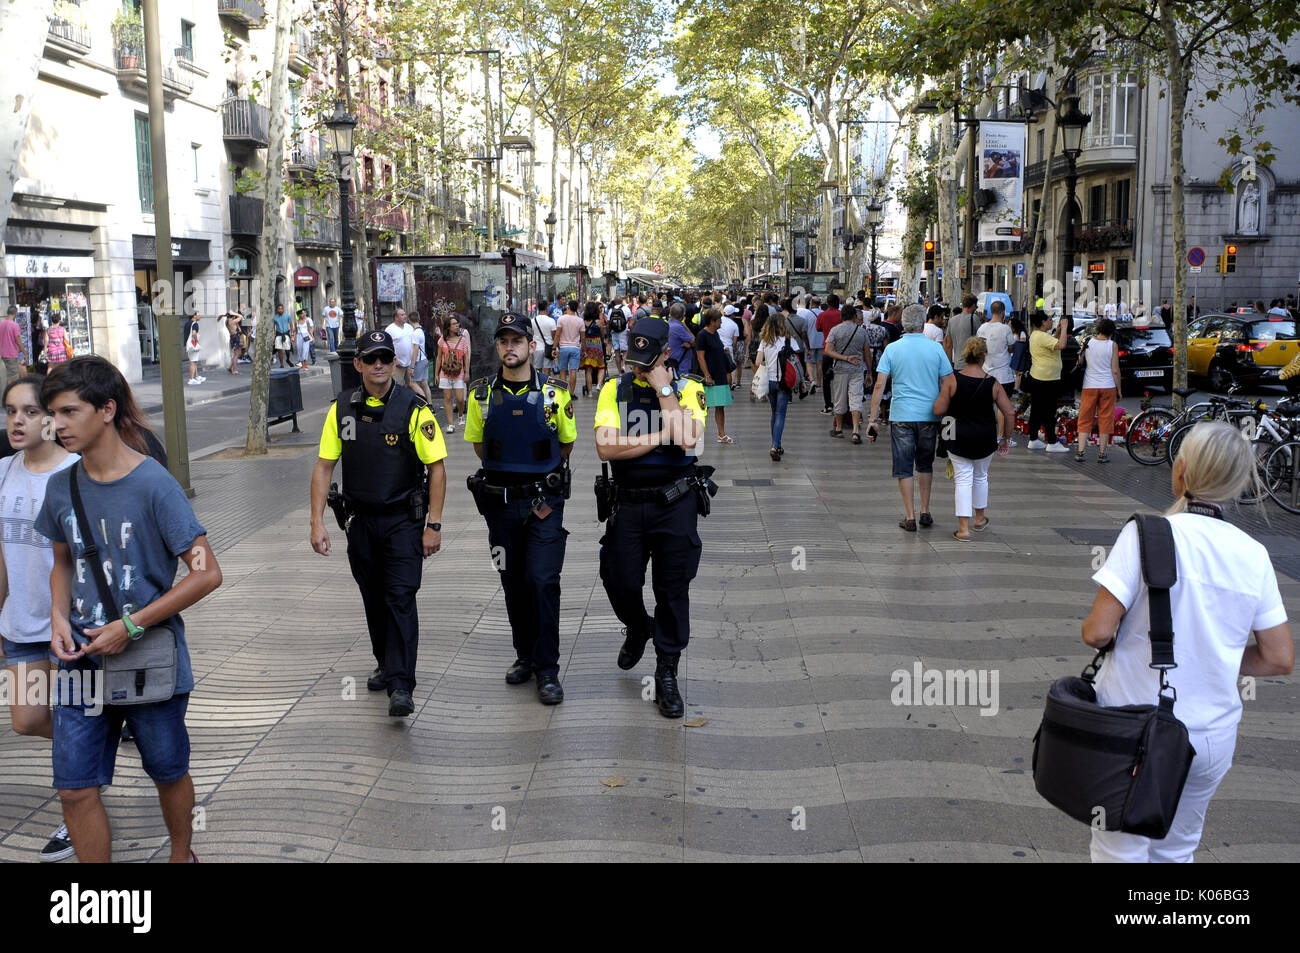 Ramblas, Barcelona, Spain. 20th  August 2017.People bring flowers, light up candles and leave dolls prayers and meditations At canaletas fontain as a symbol of the Ramblas attack  to pay  tribute  to the victims of  the terrorist attack in Barcelona. Credit: fototext/Alamy Life News - Stock Image